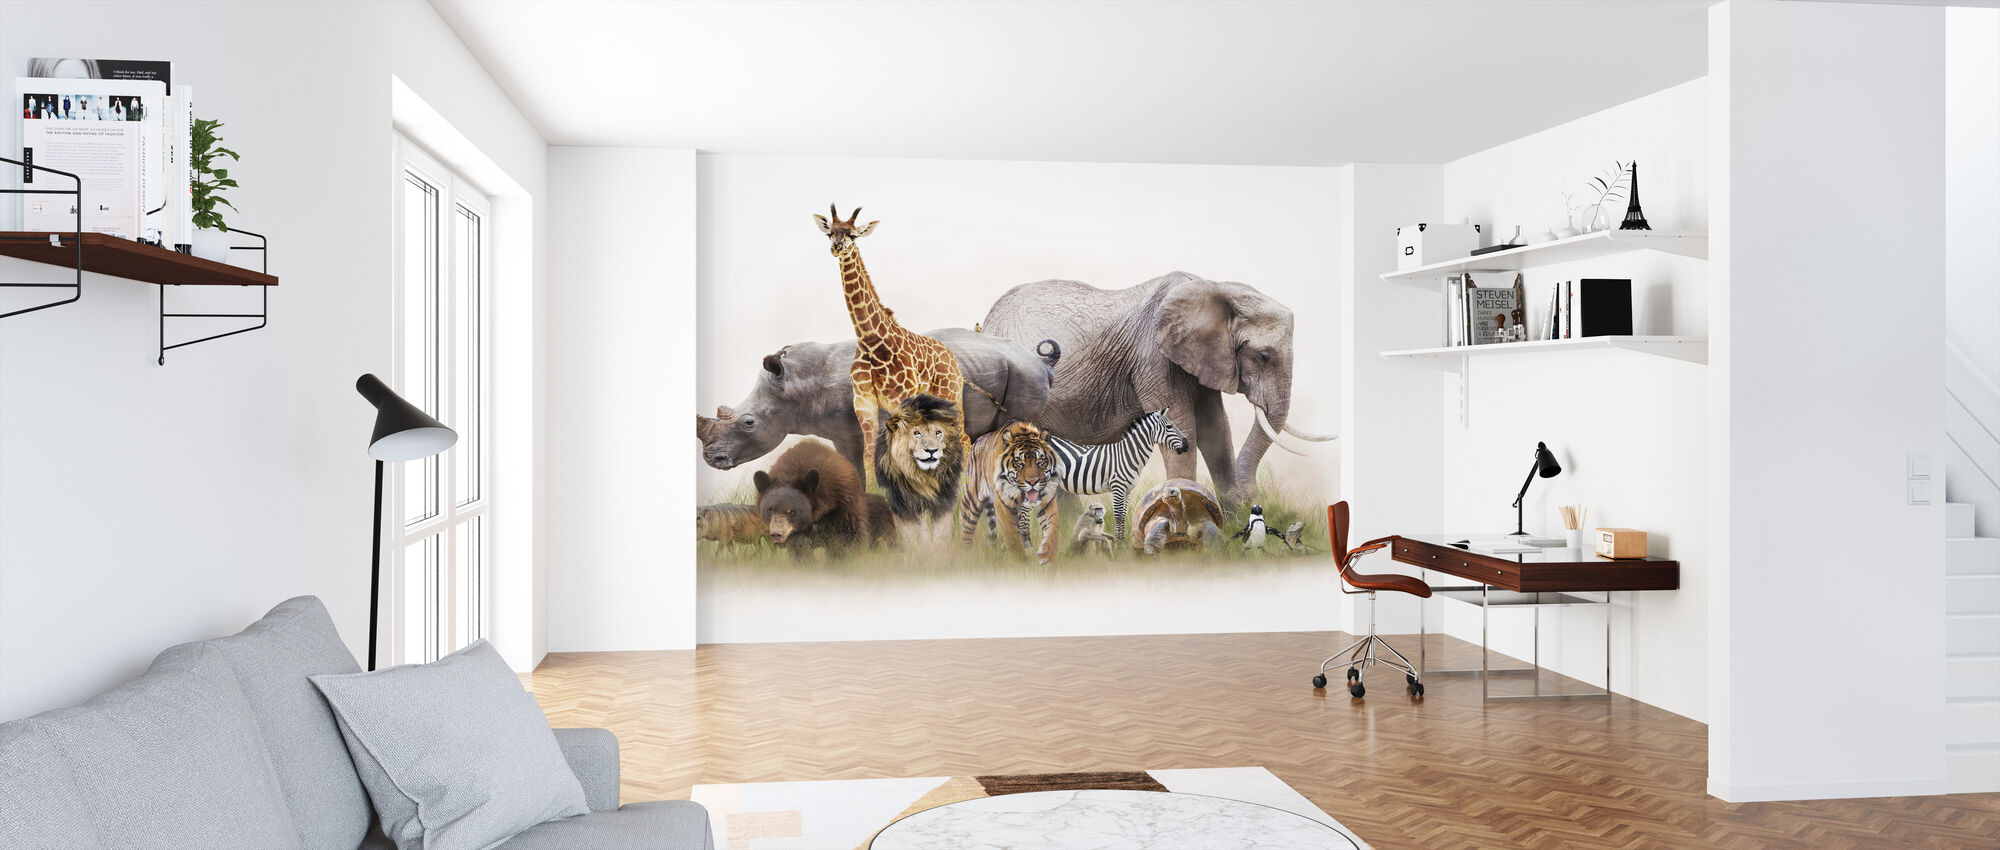 Group of Zoo Animals - Wallpaper - Office